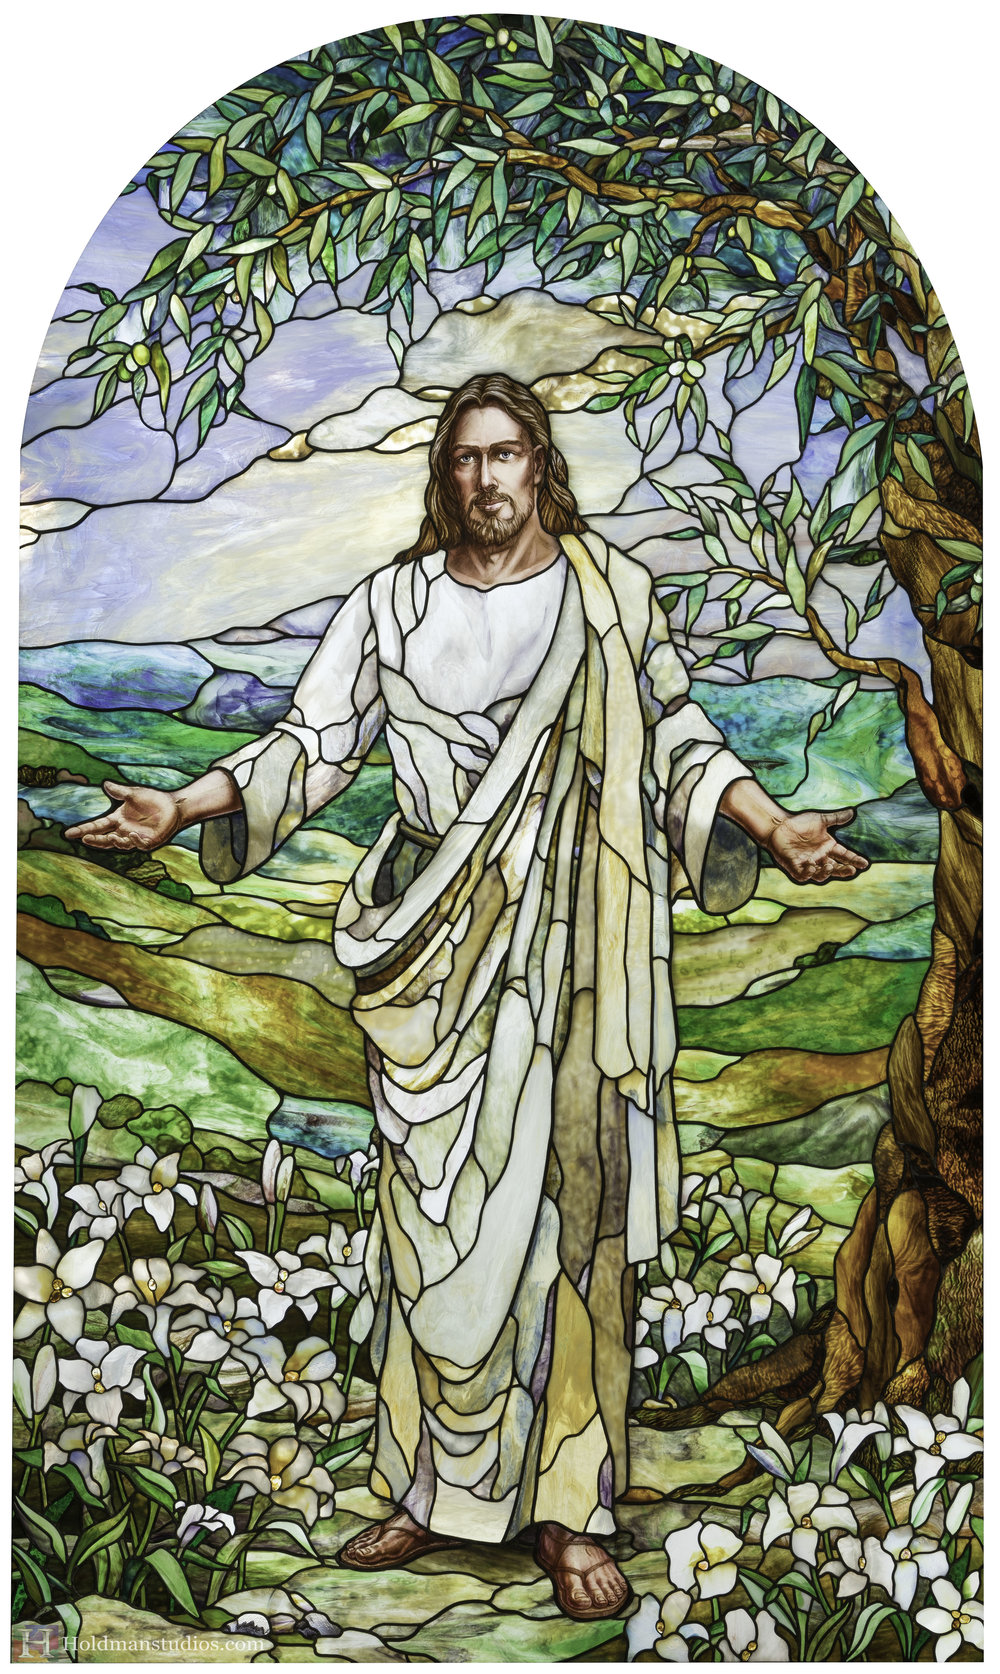 Holdman-Studios-Stained-Glass-Paris-LDS-Temple-Welcoming-Center-Jesus-Christ-Madonna-Lily-Flowers-Leaves-Tree-Sky-Window.jpg